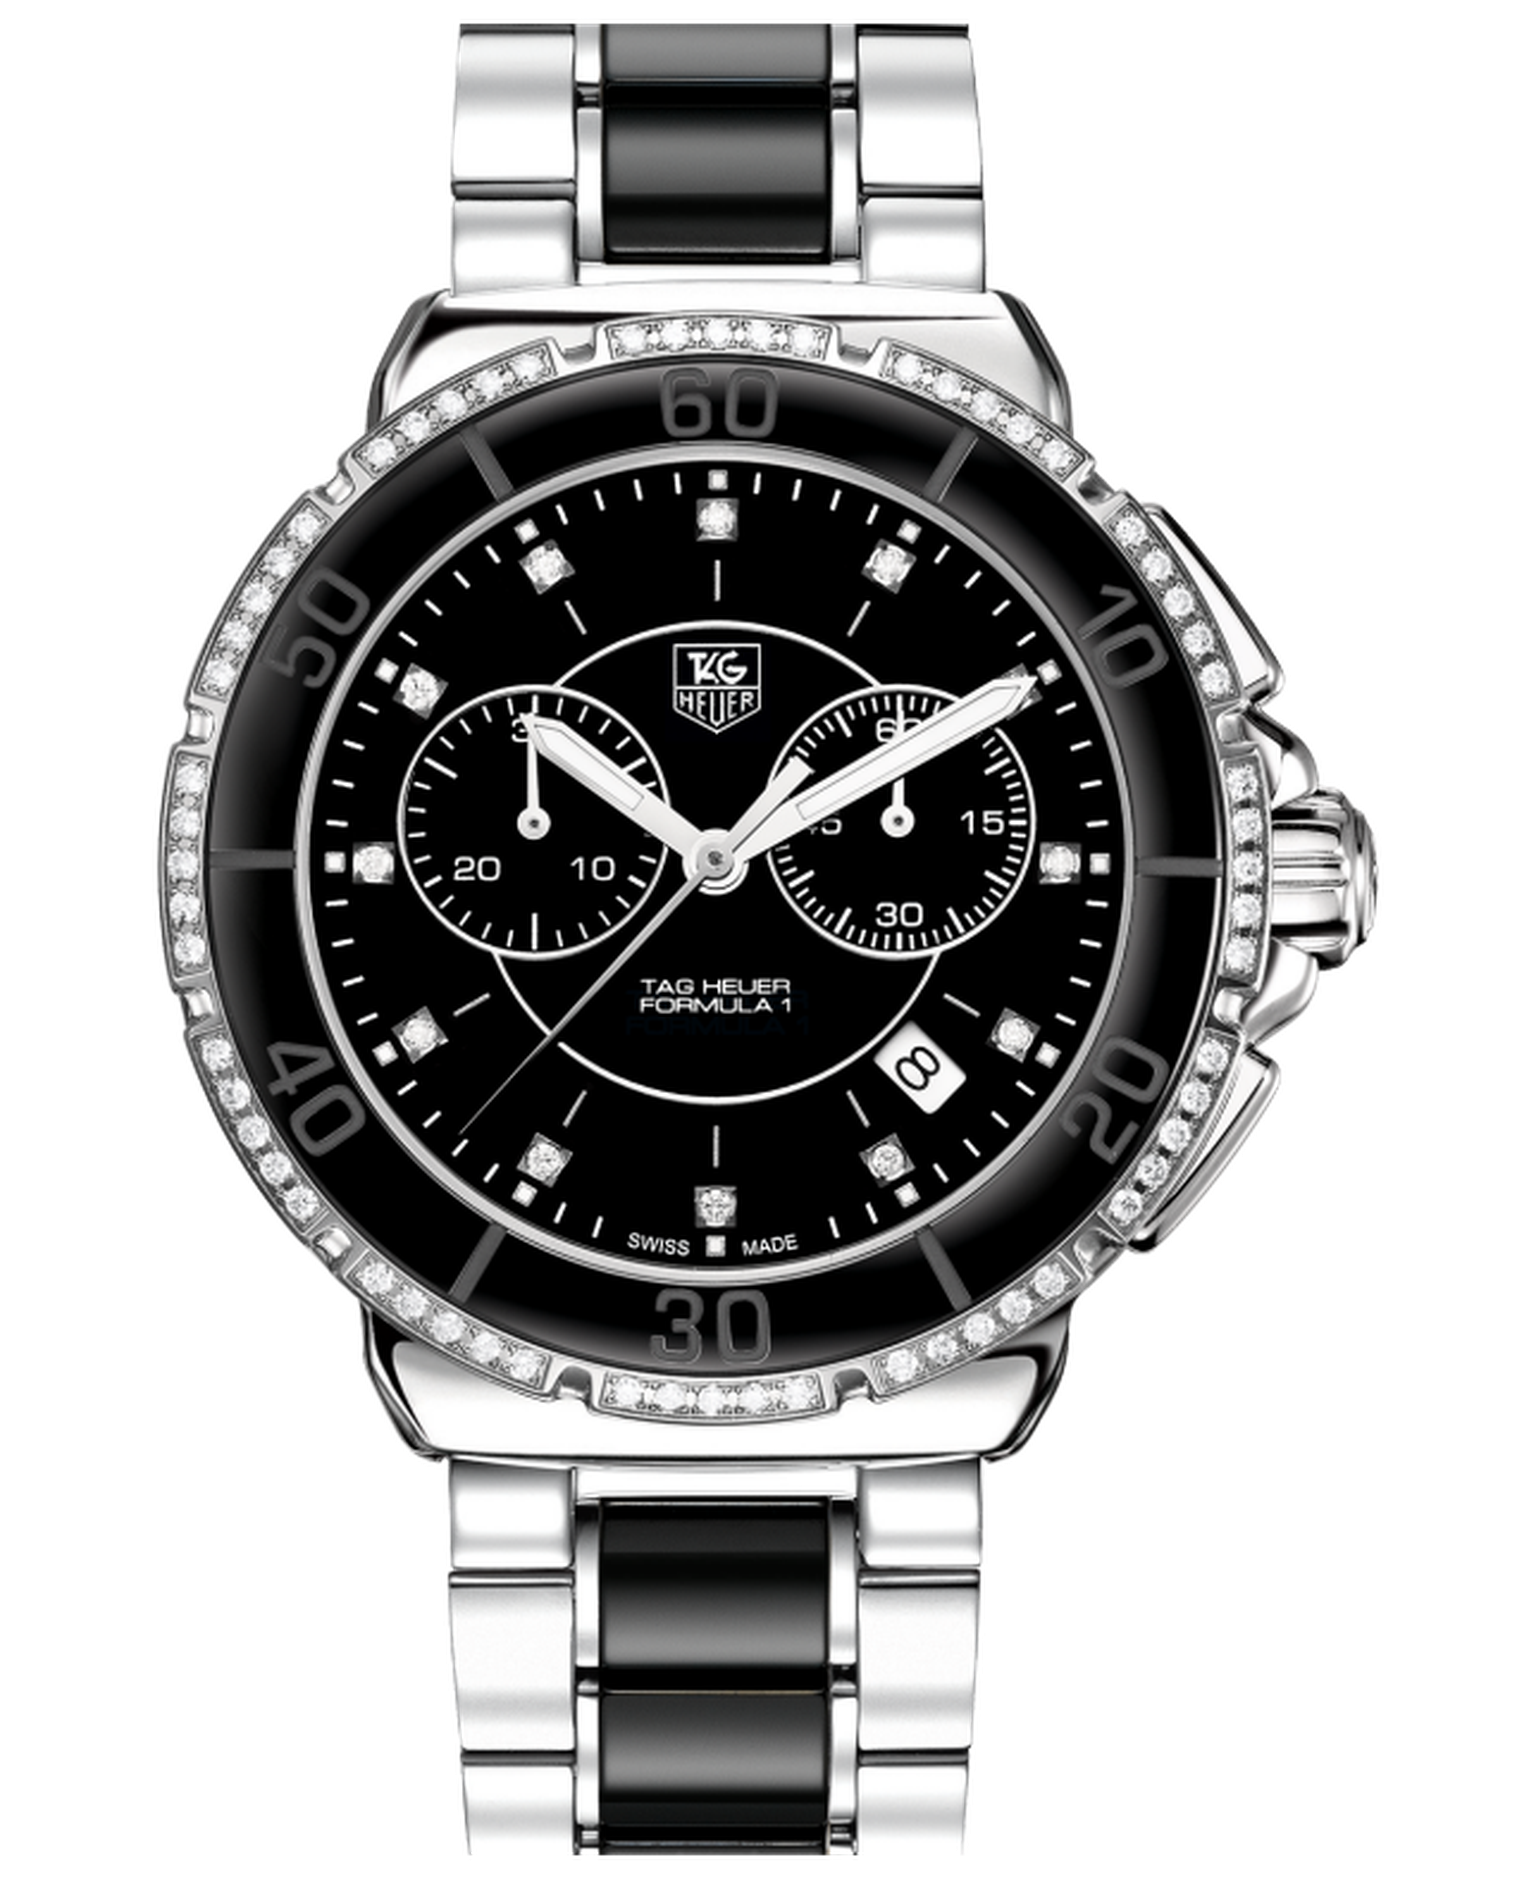 TAG Heuer watch.png